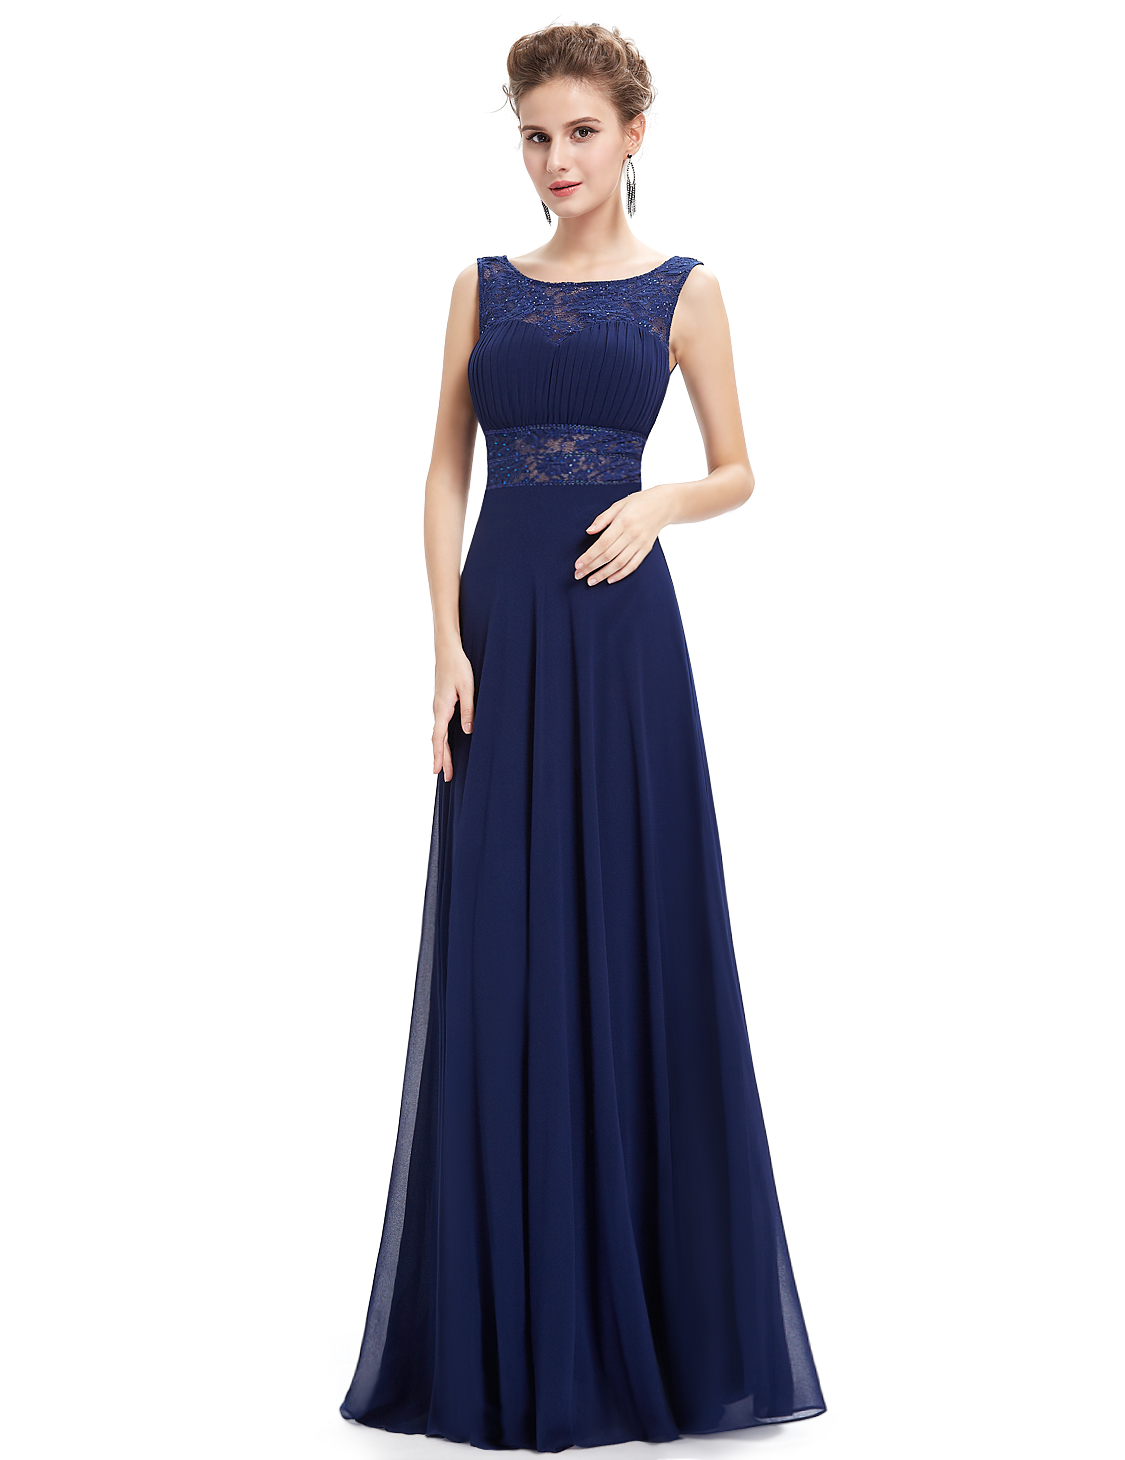 e91c34352c334 Ever-Pretty US Long Evening Dresses Lace Backless Bridesmaid Prom ...